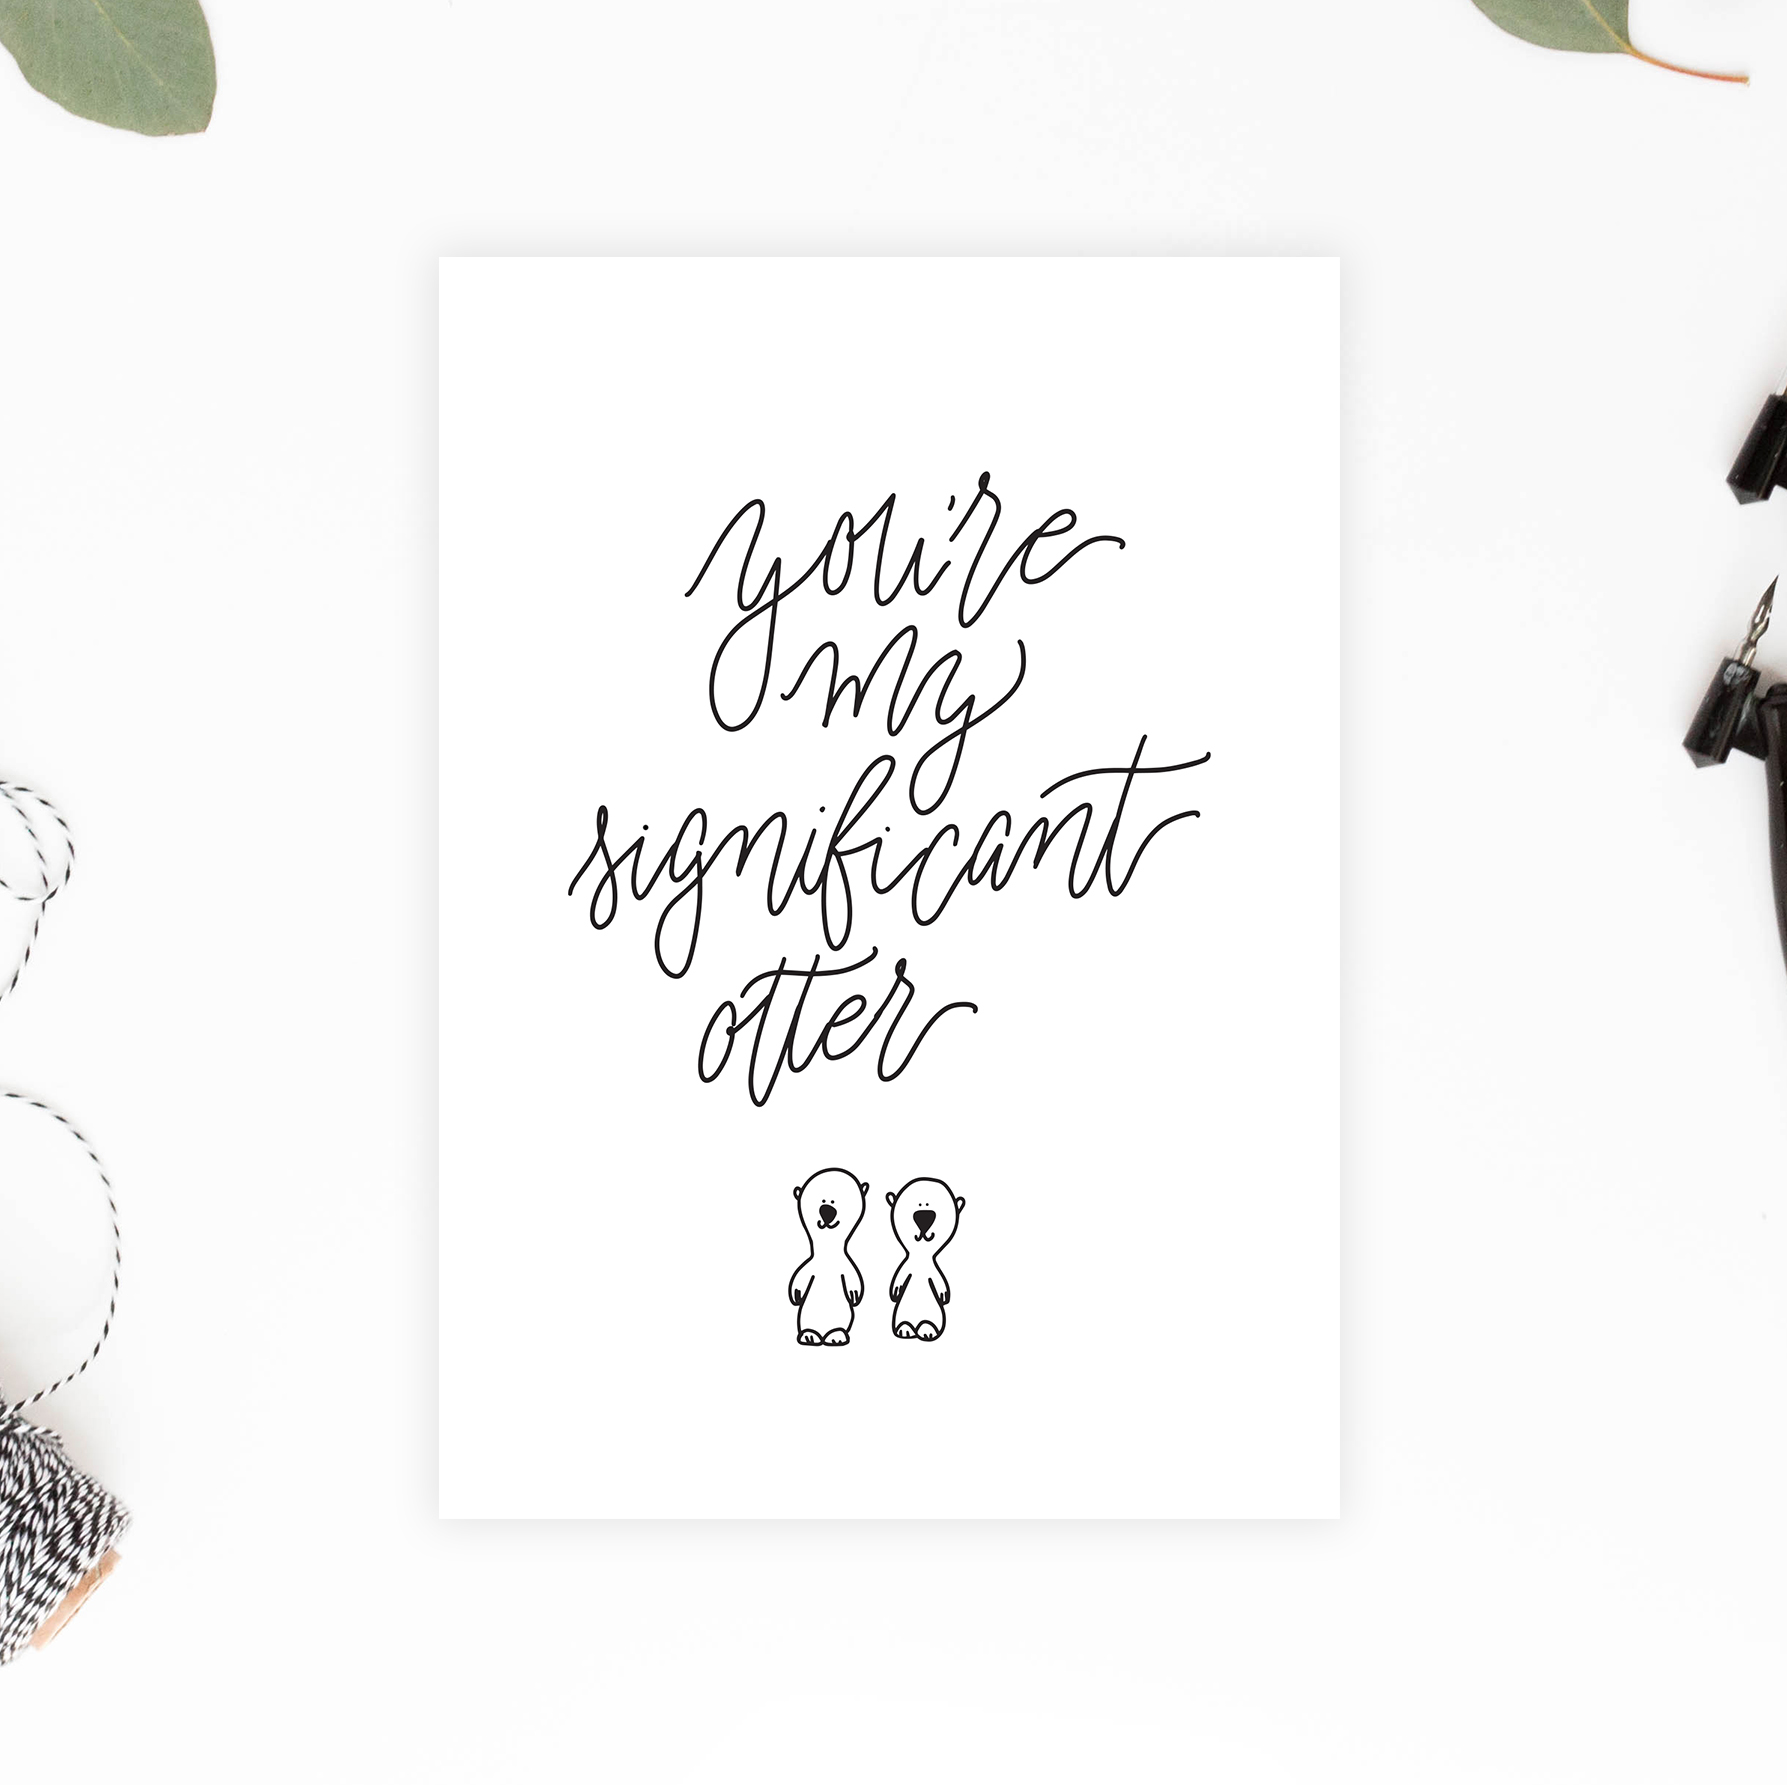 You're My Significant Otter DIY Valentines Card - Printable Anniversary/Valentines Card - Animal Pun, Love Pun Card - Downloadable Greeting Cards - True North Paper Co.